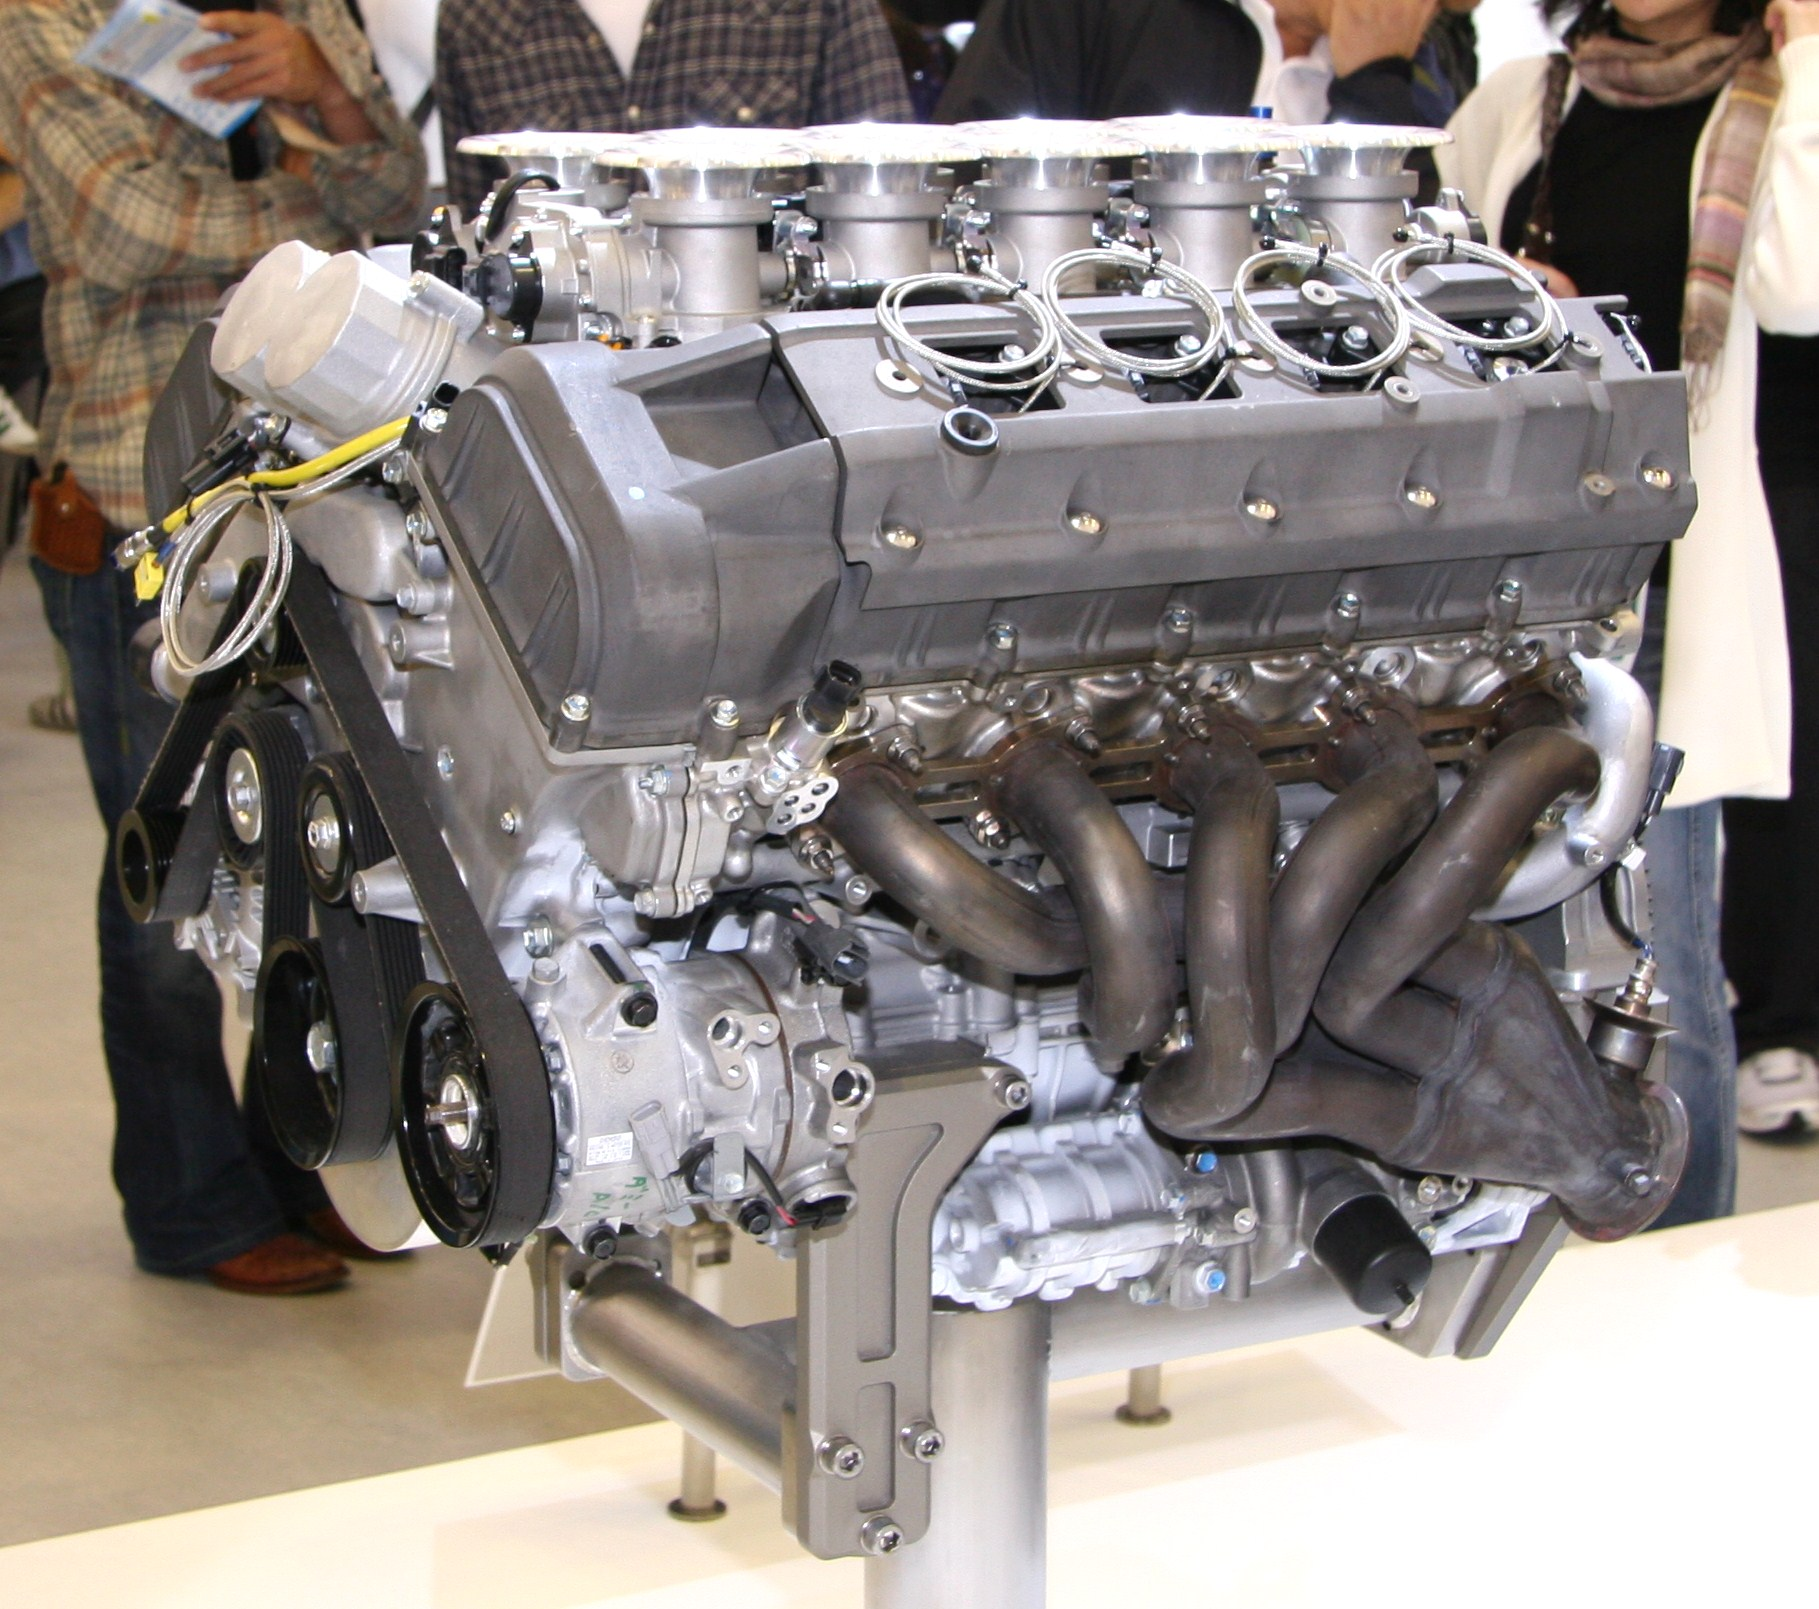 File:Toyota 1LR-GUE engine.jpg - Wikimedia Commons